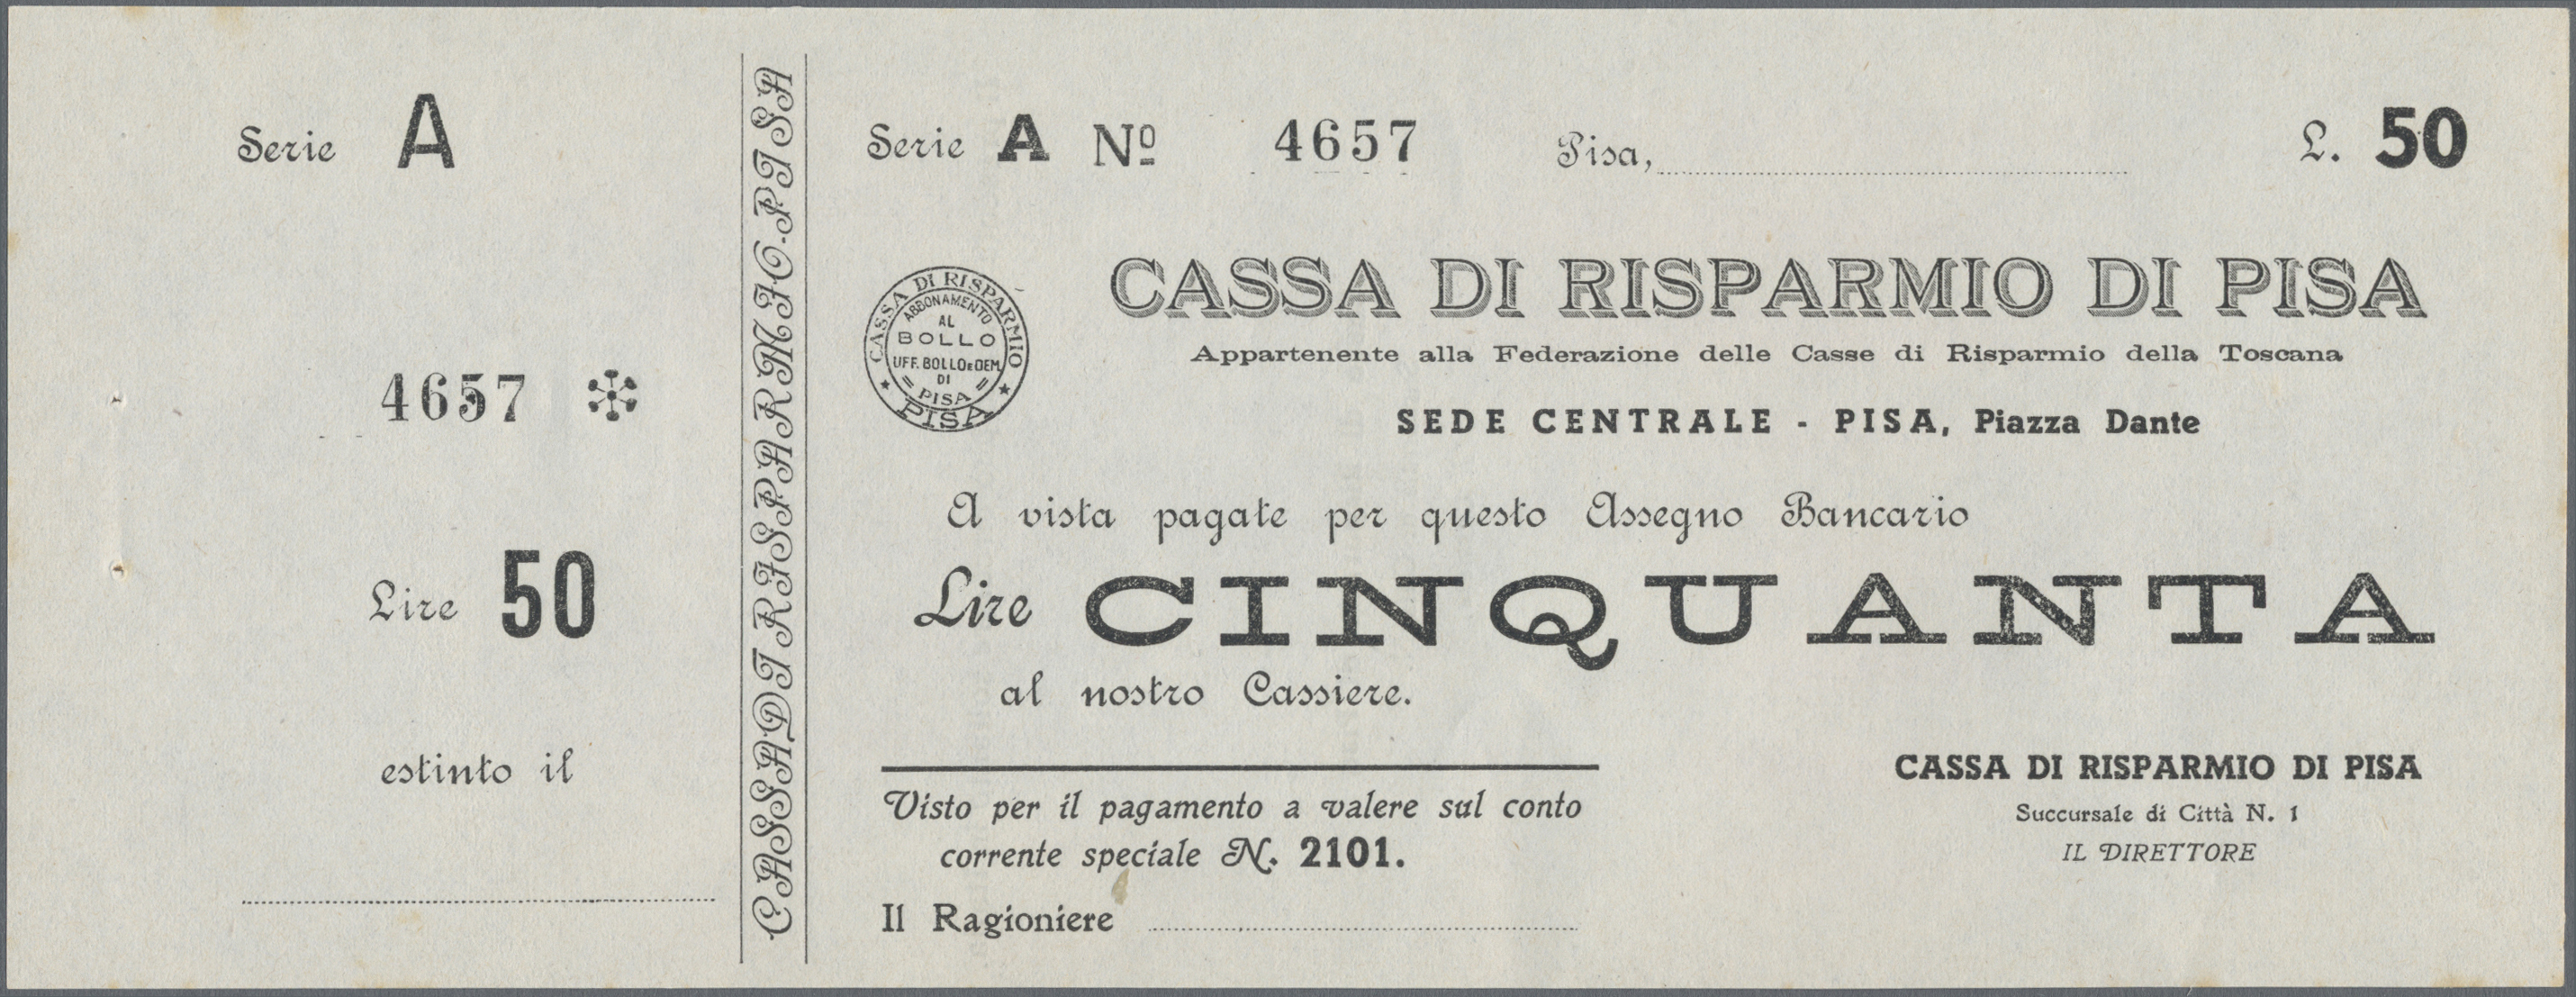 Lot 00471 - Italy / Italien   Banknoten  -  Auktionshaus Christoph Gärtner GmbH & Co. KG Sale #48 The Banknotes